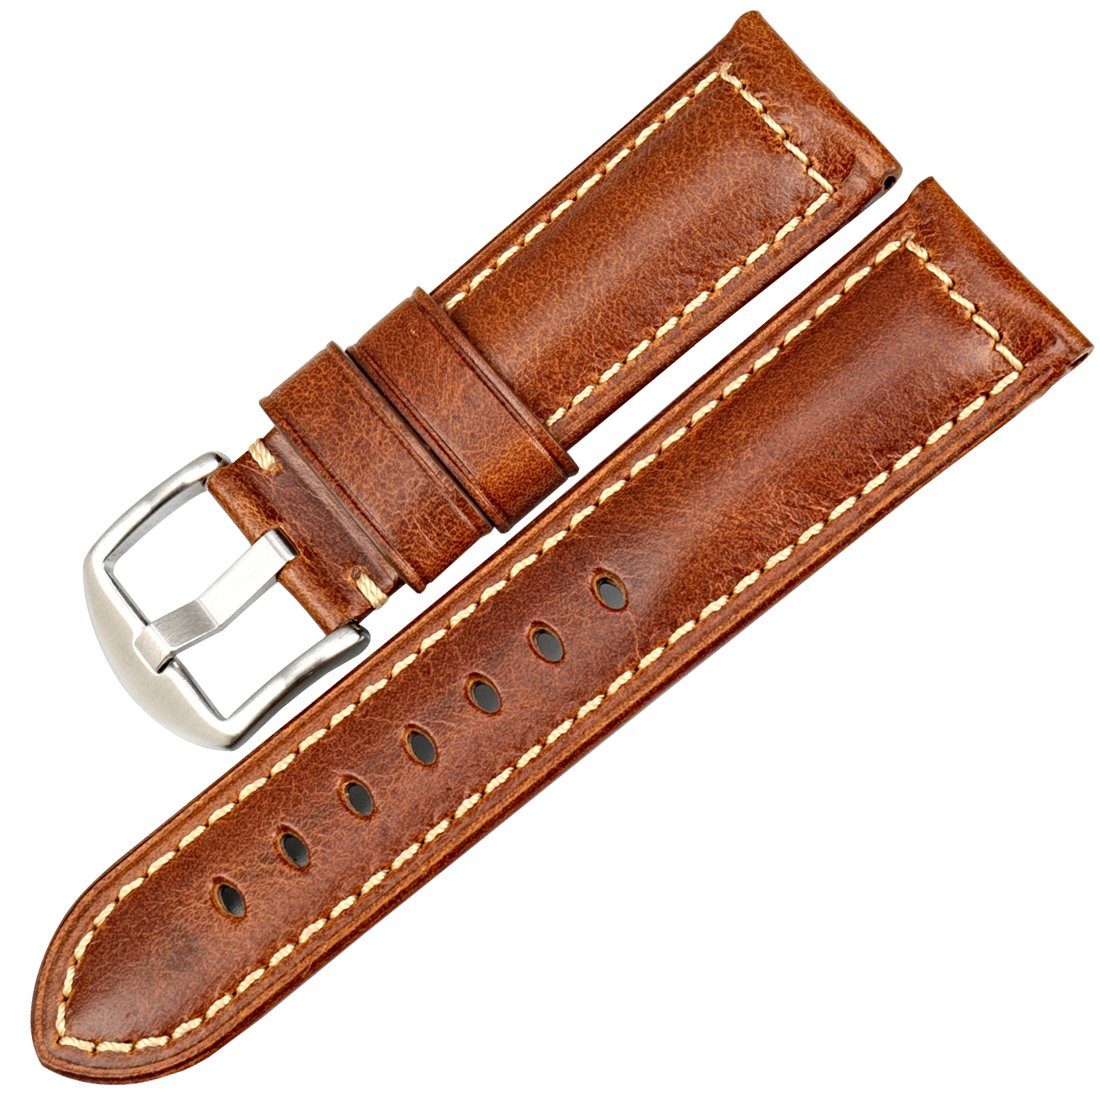 MAIKES Vintage Oil Wax Leather Strap Watch Band 5 Colors Available 22mm 24mm 26mm Watchband Greasedleather Wristband (Band Width 20mm, Light Brown+Silver Clasp)